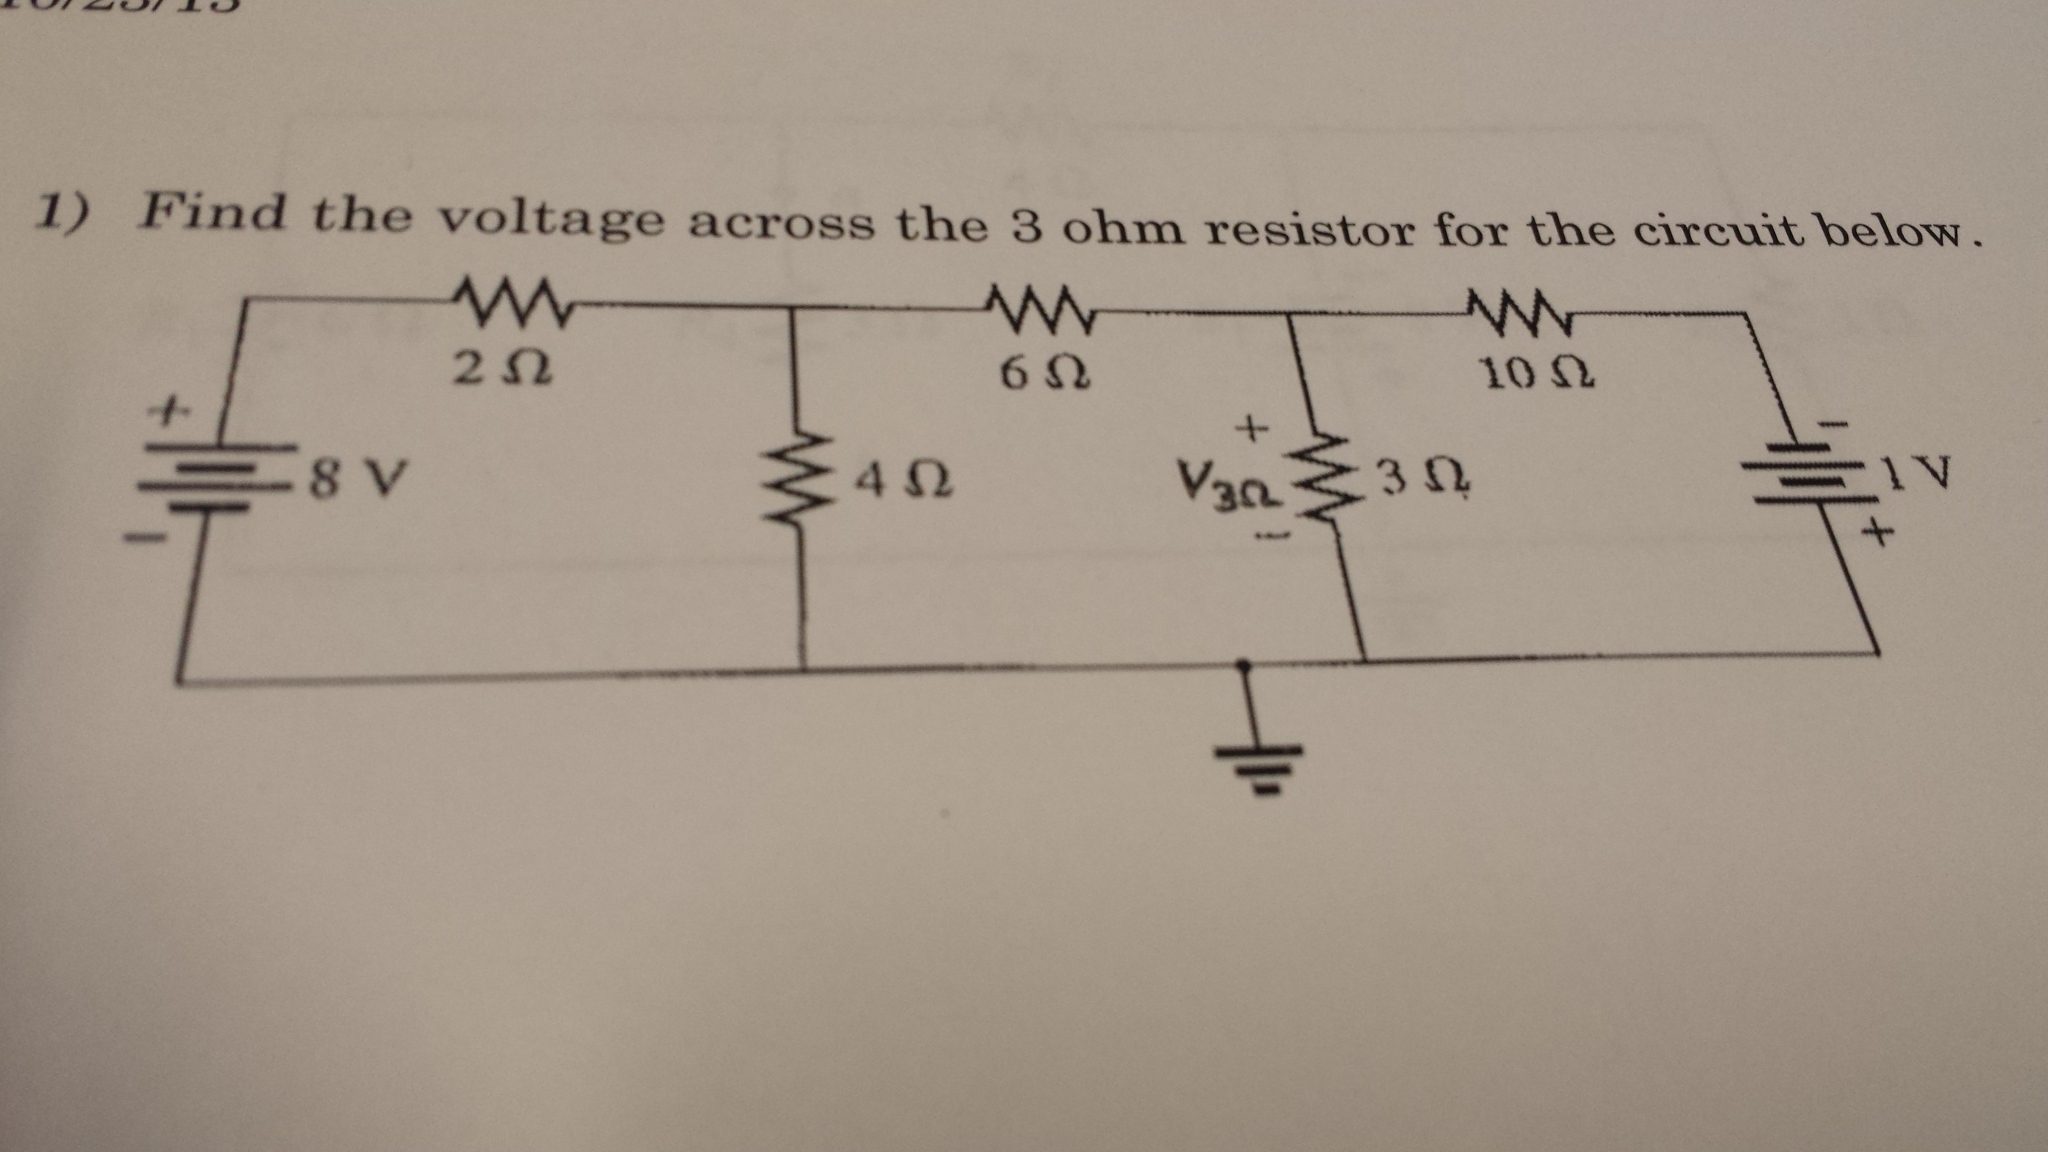 Find the voltage across the 3 ohm resistor for the